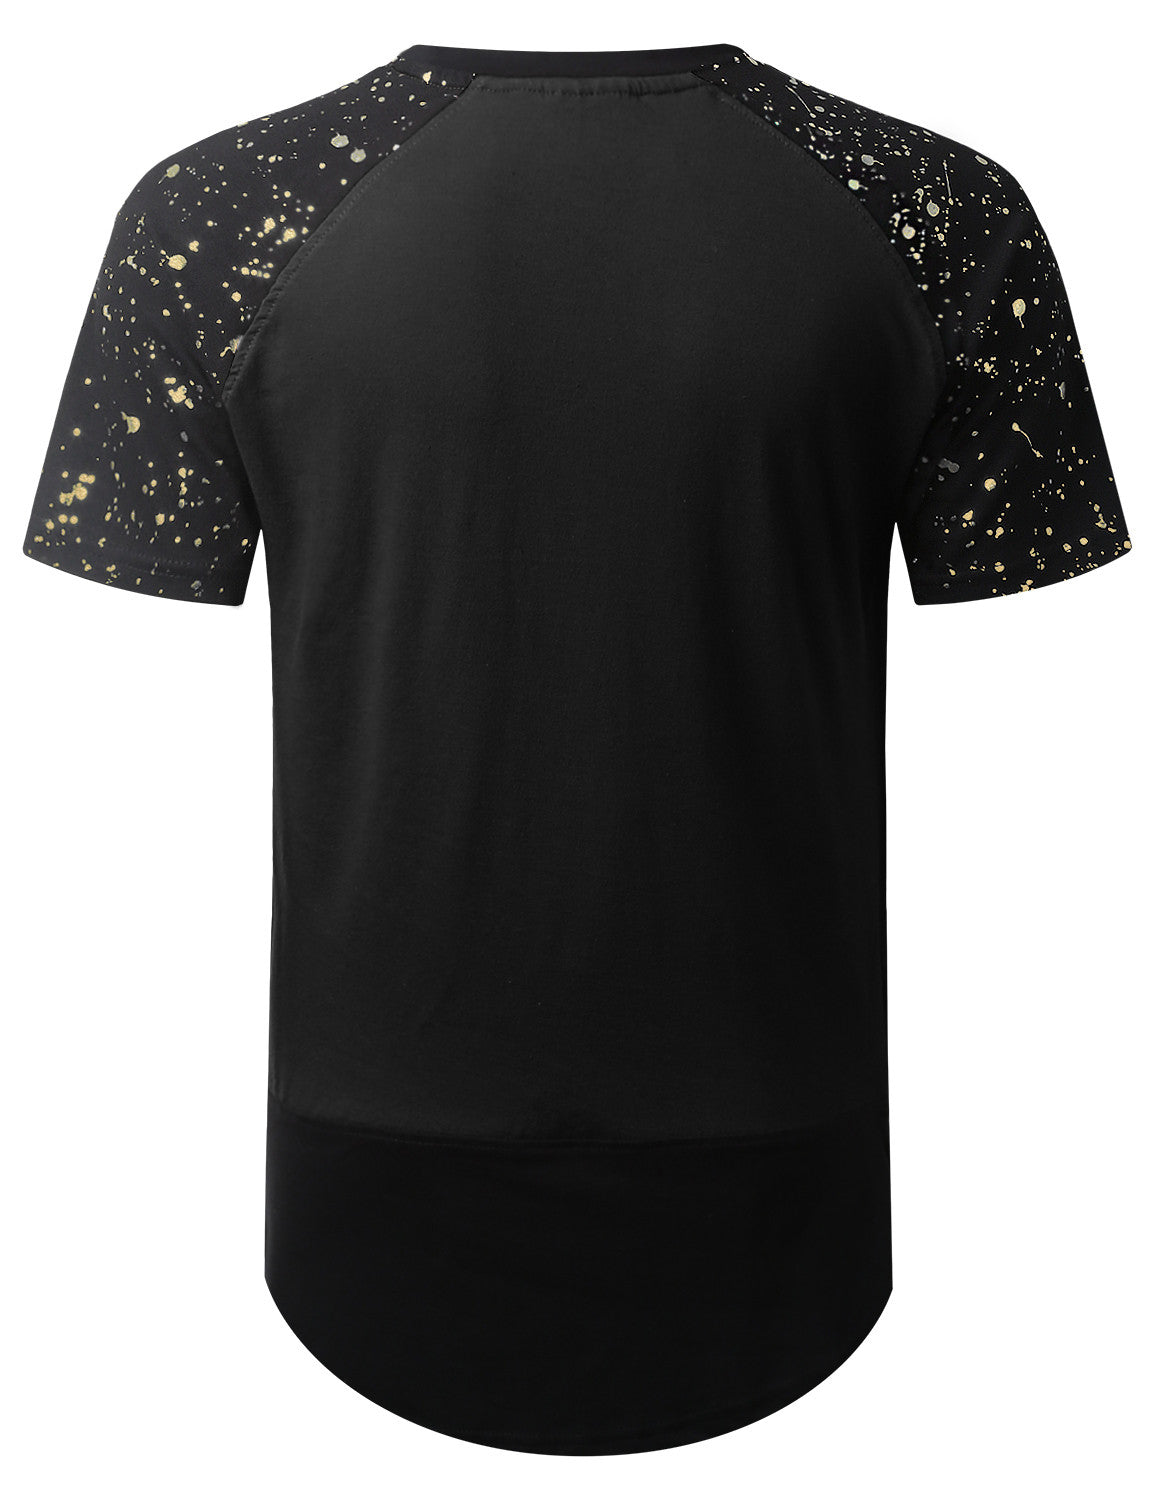 BLACK Splatter Ripped Raglan Longline T-shirt - URBANCREWS